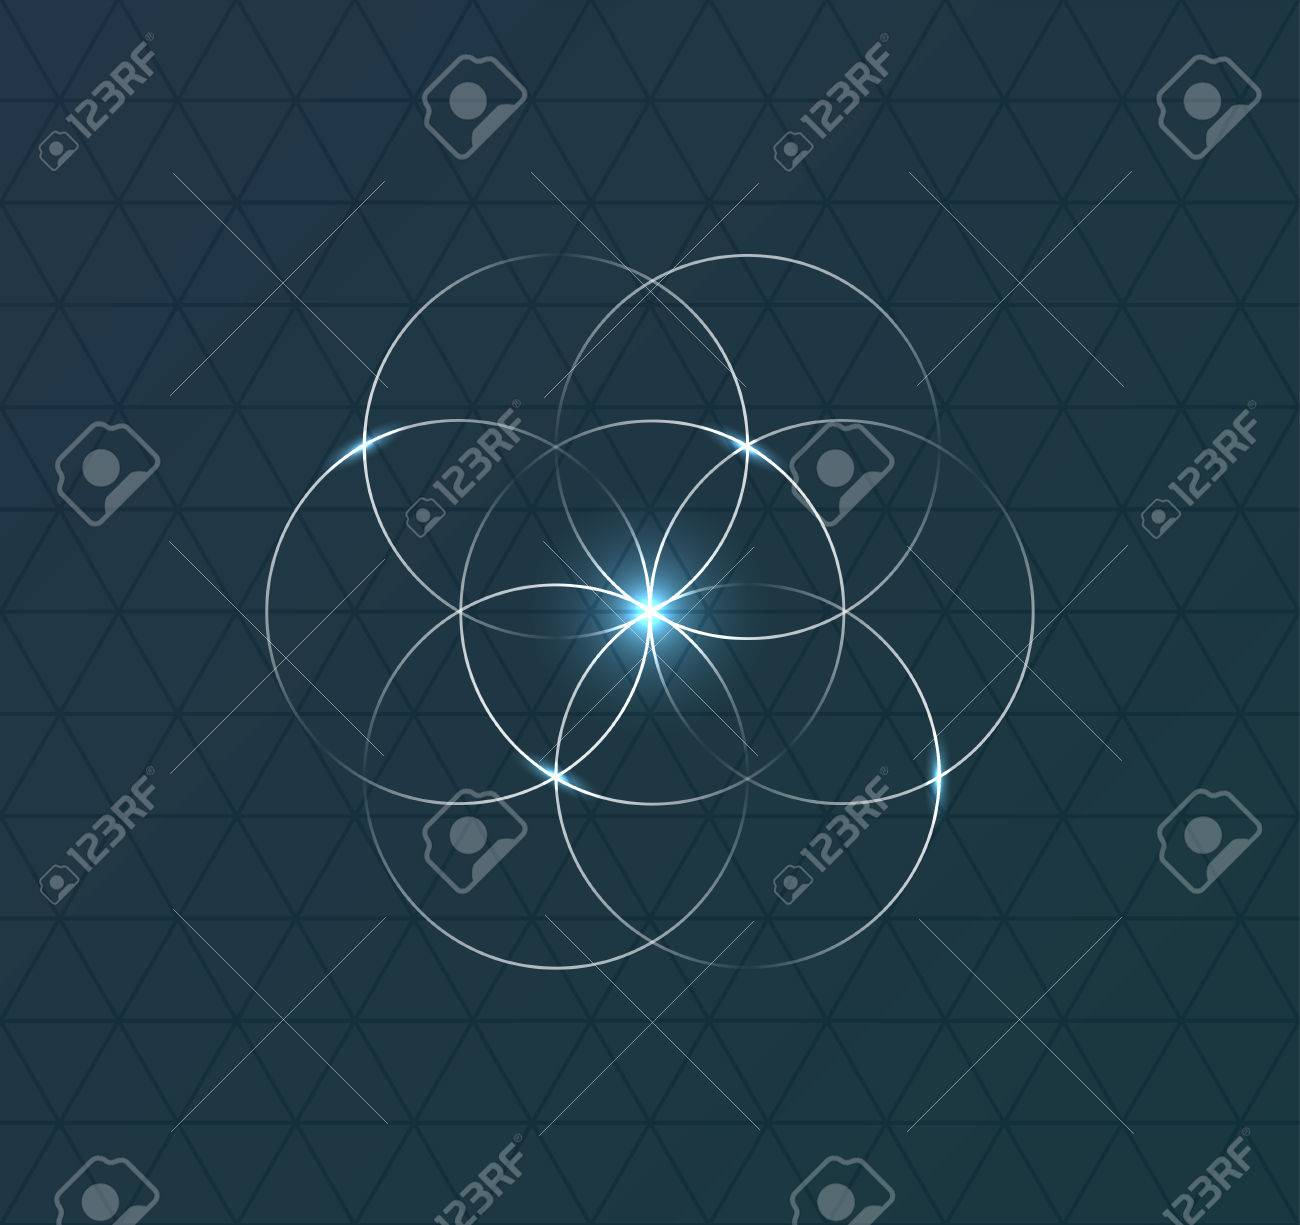 Abstract geometrical symbol on dark blue background. illustration Banque d'images - 52776039